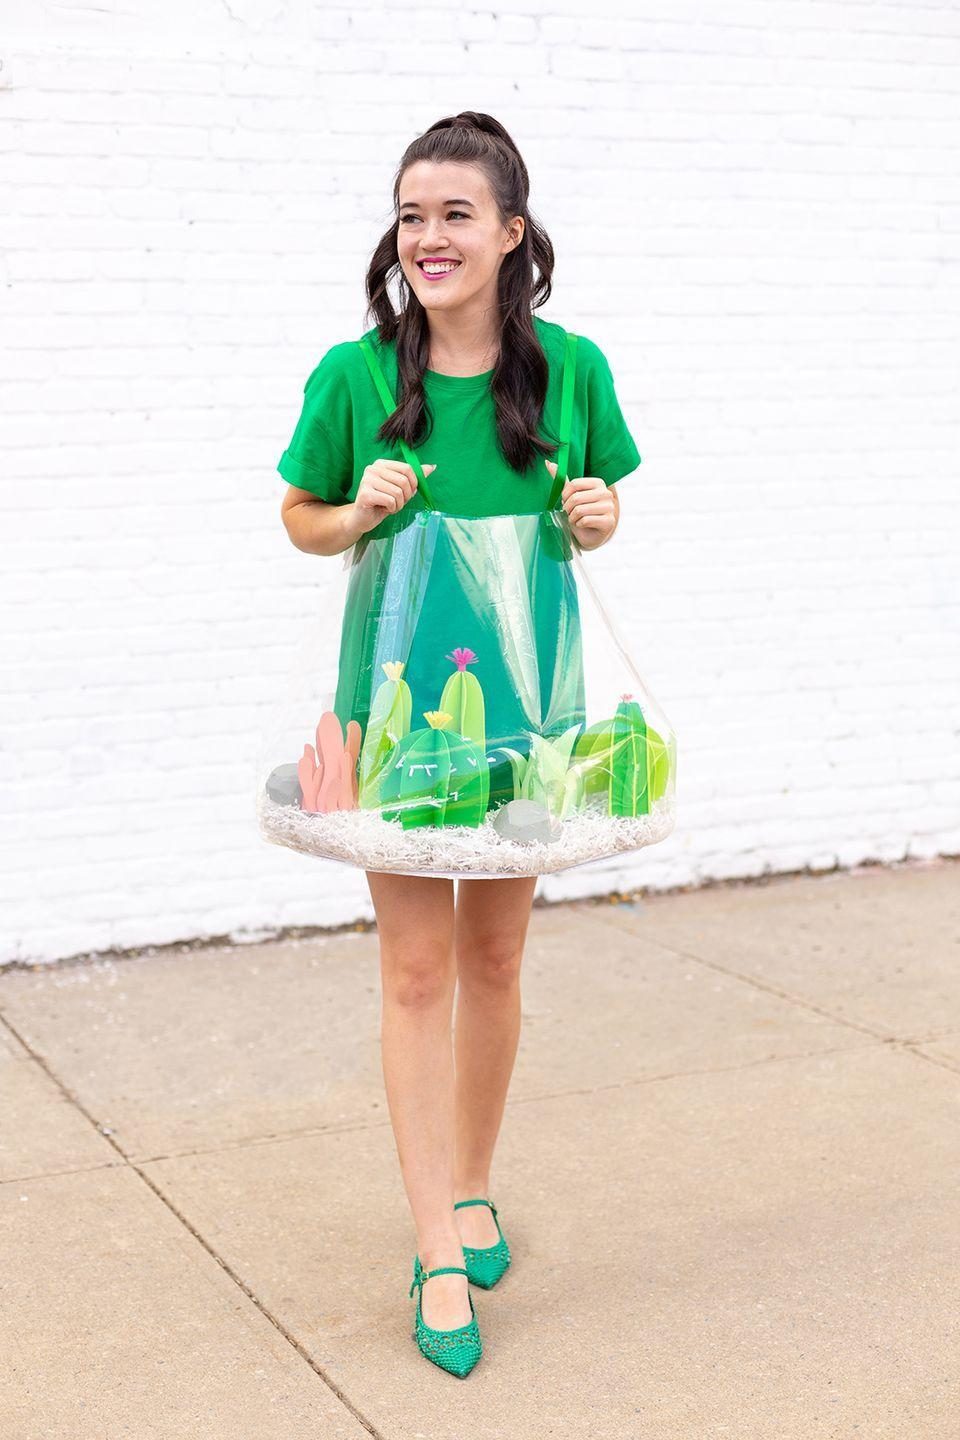 """<p>If you're not just a regular mom, but a <em>plant </em>mom, look no further than this adorable getup. The foam succulents and cacti will be the talk of your social circle.</p><p><strong>Get the tutorial at <a href=""""http://www.awwsam.com/2018/10/diy-terrarium-halloween-costume.html"""" rel=""""nofollow noopener"""" target=""""_blank"""" data-ylk=""""slk:Aww Sam"""" class=""""link rapid-noclick-resp"""">Aww Sam</a>.</strong></p>"""